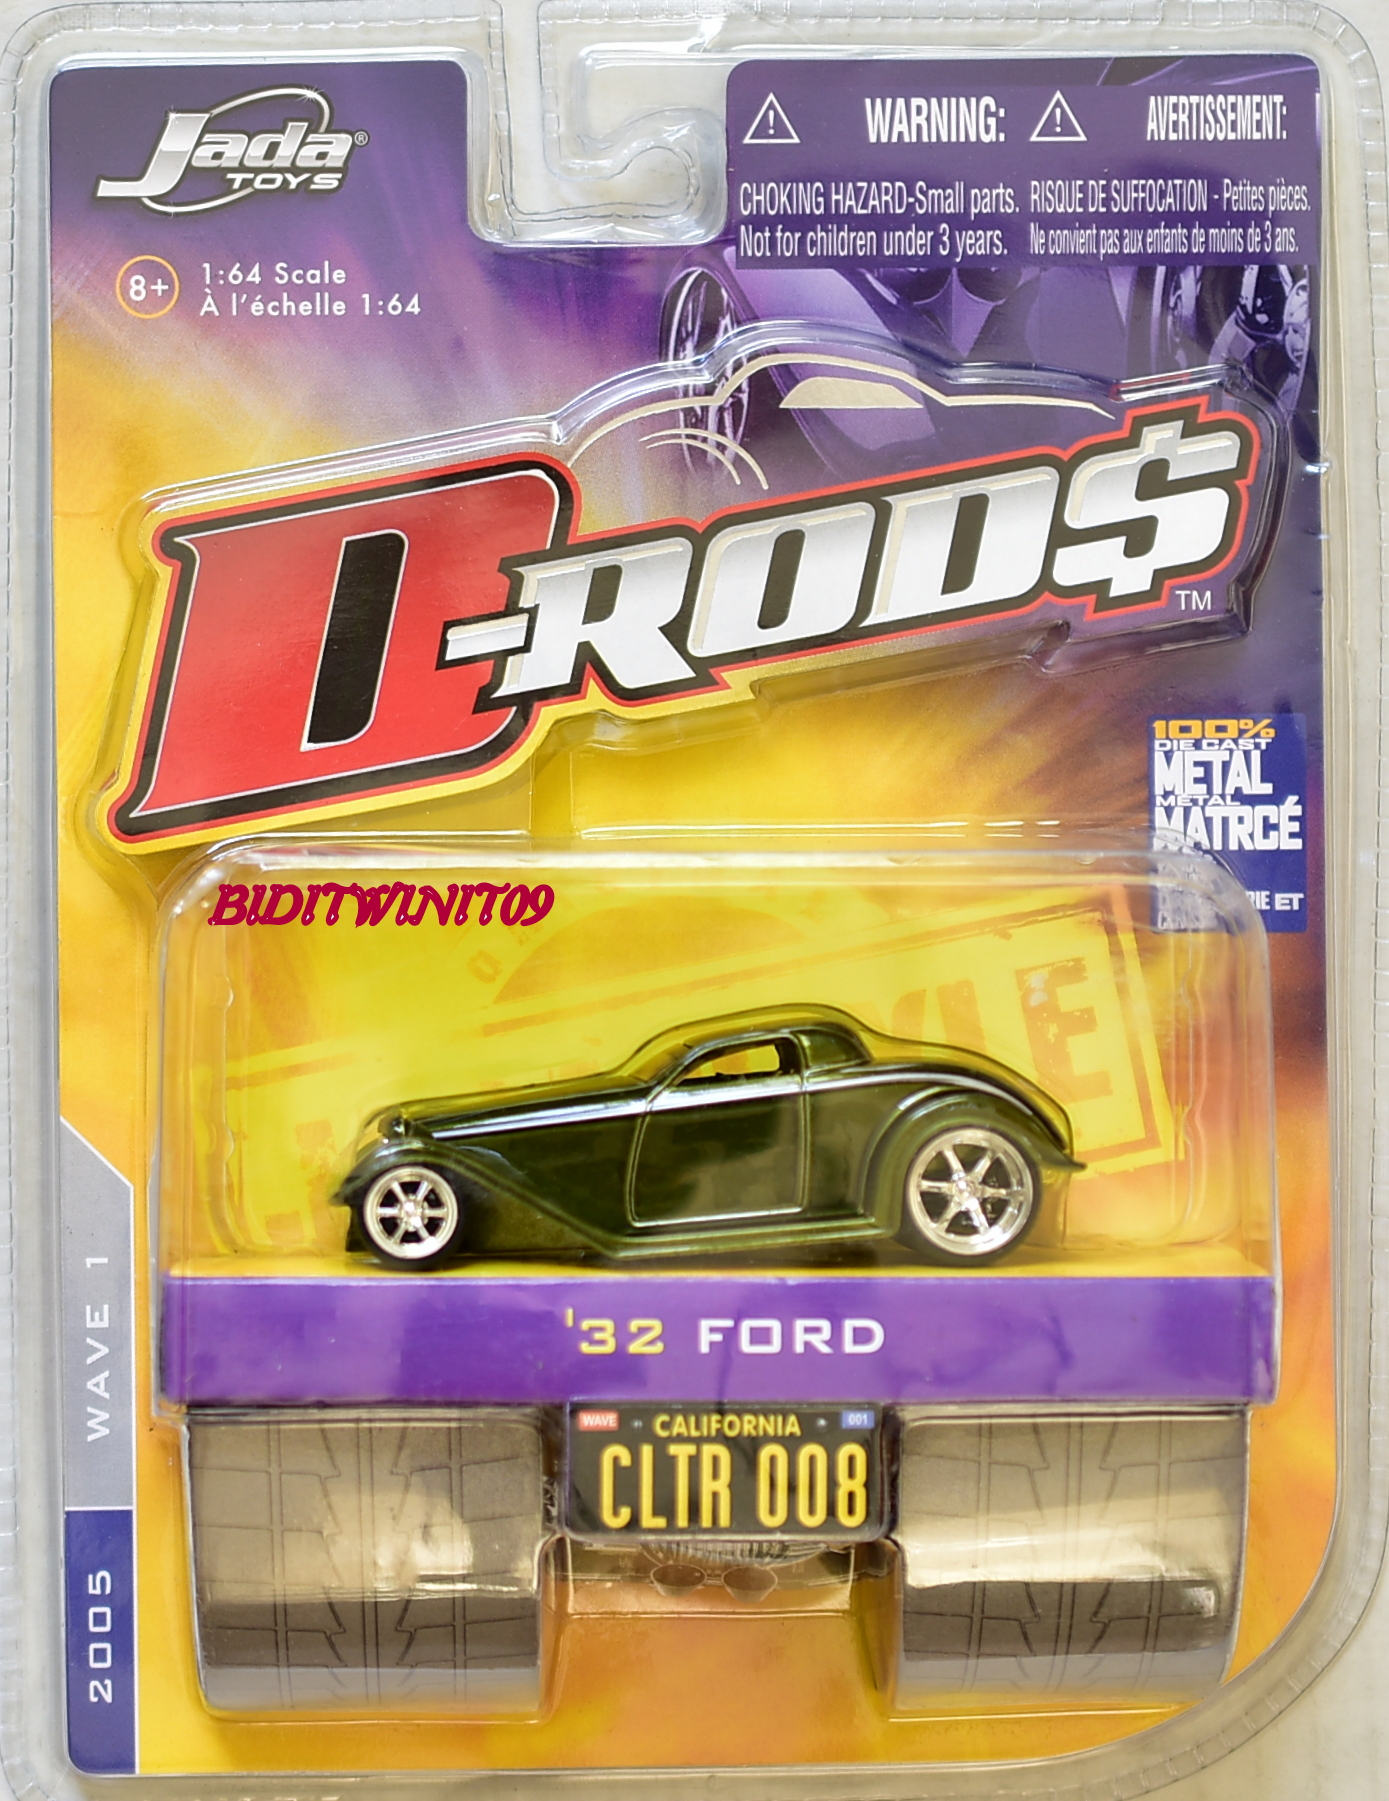 JADA TOYS D-RODS 2005 WAVE 1 1:64 SCALE '32 FORD CLTR 008 GREEN